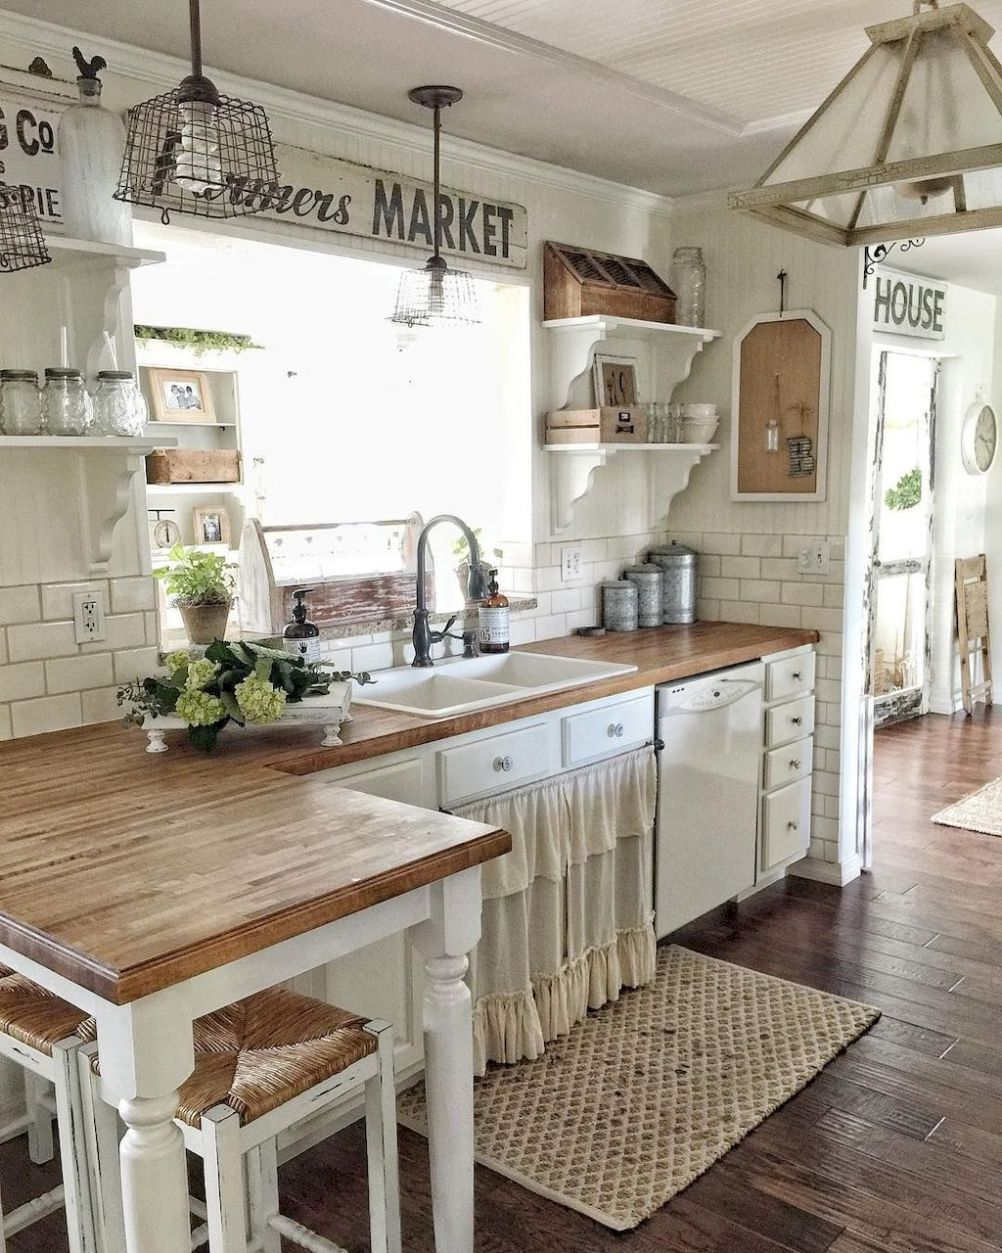 Charmant 50 Elegant Farmhouse Kitchen Decor Ideas (29)